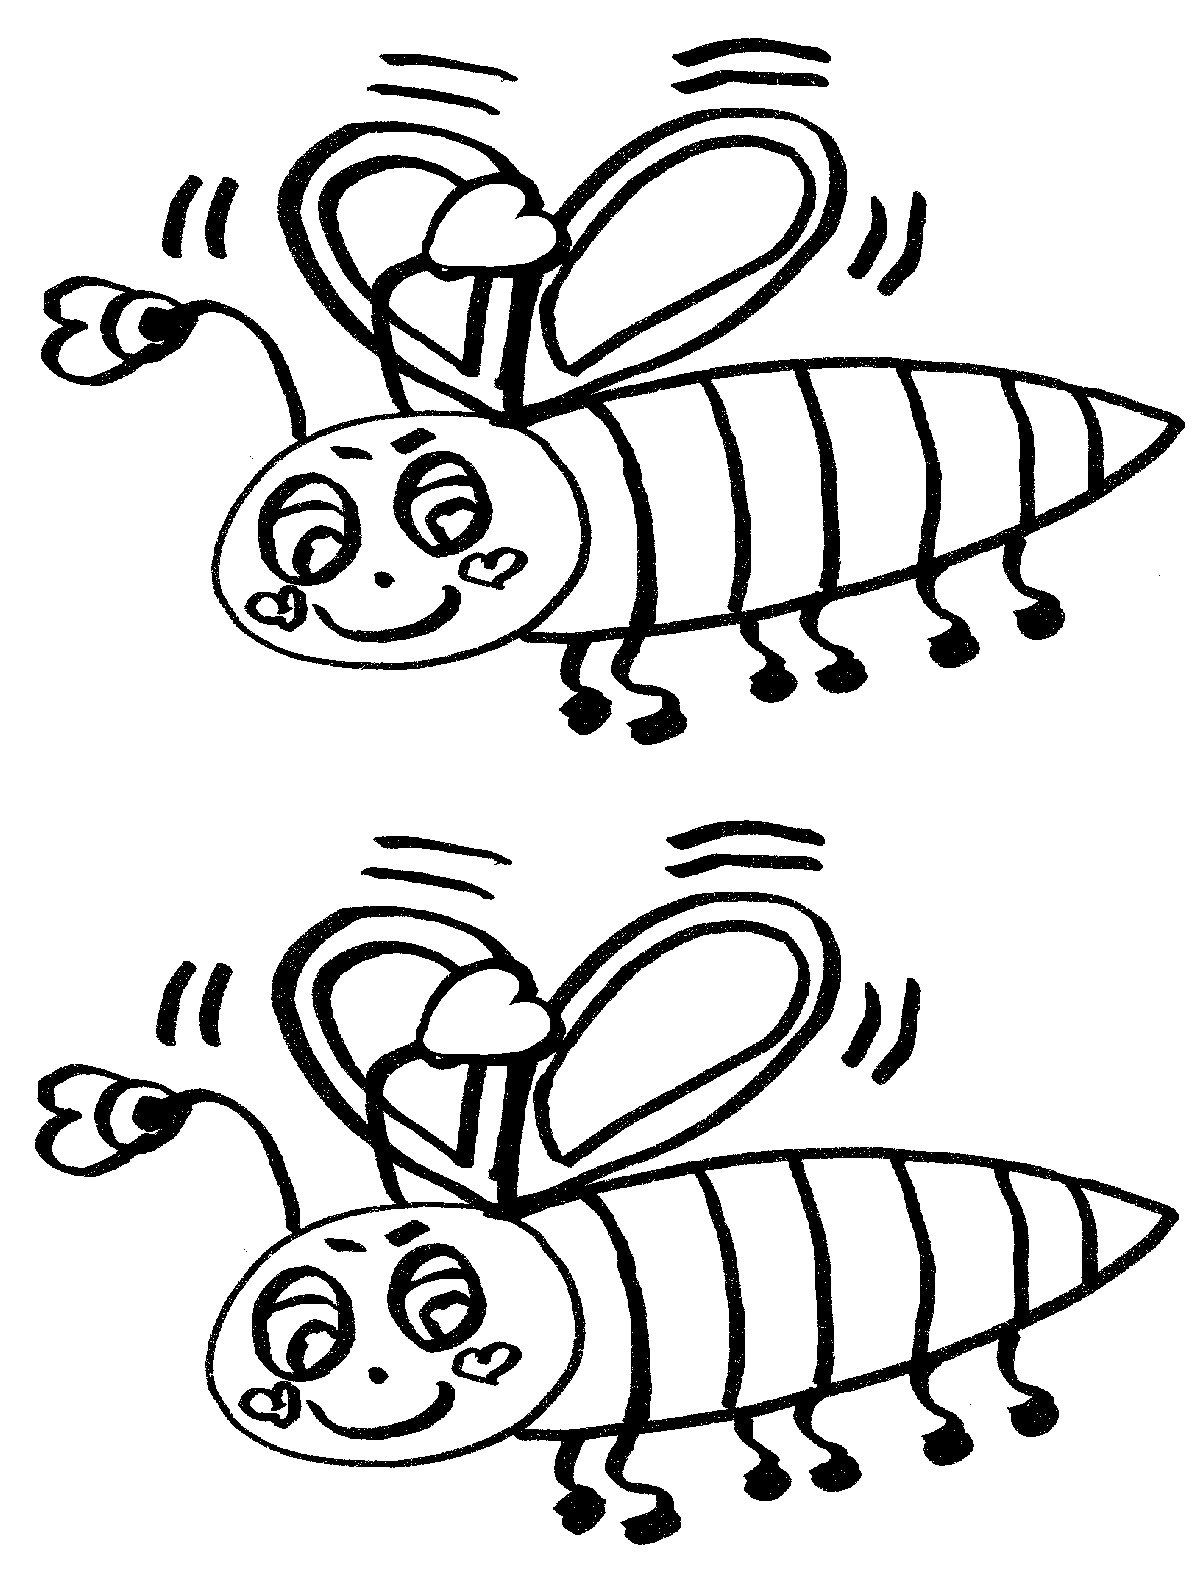 Firefly Clipart Firefly clip art free